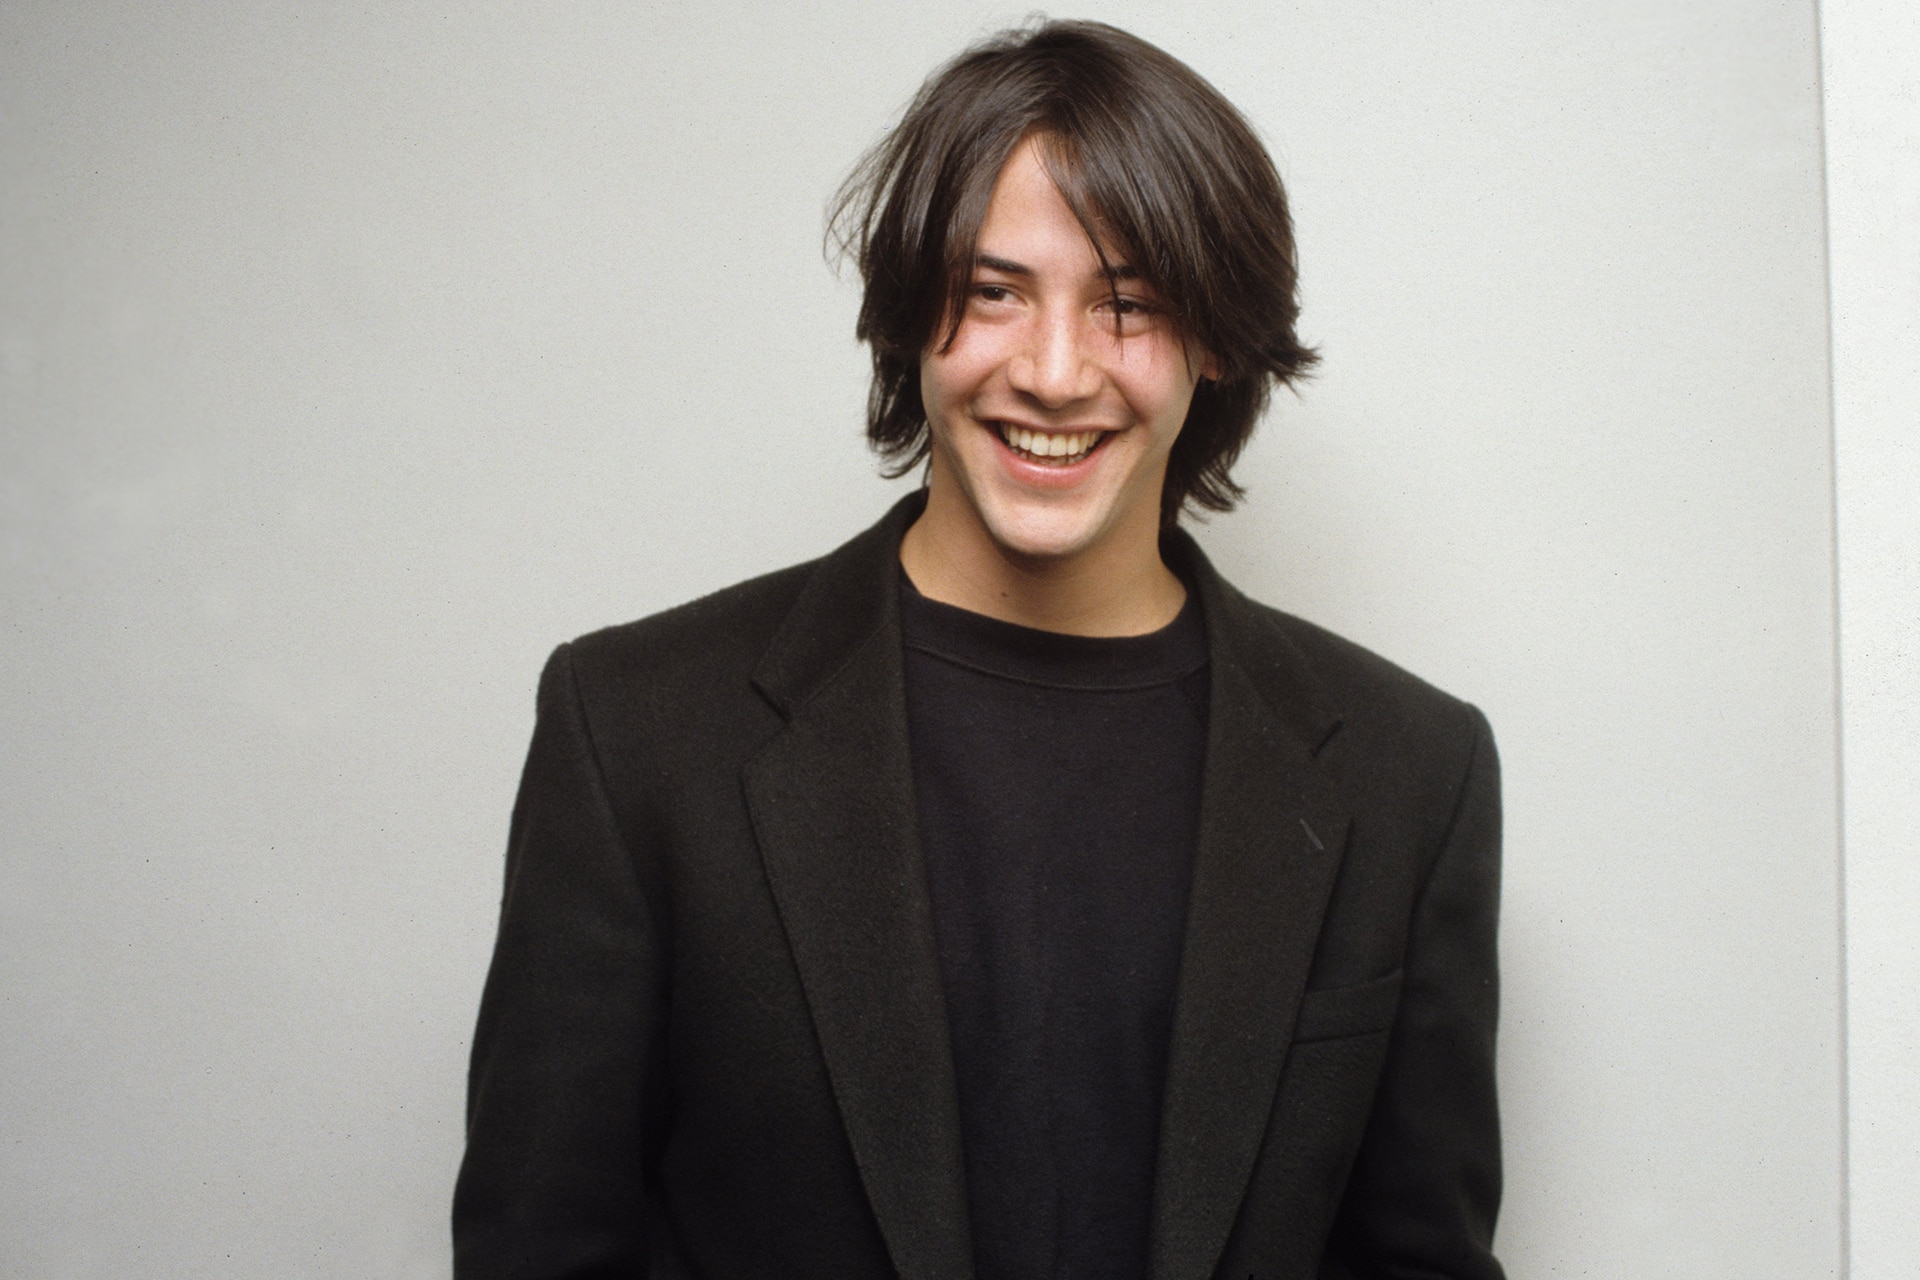 16 vintage photos that prove Keanu Reeves is the original hipster